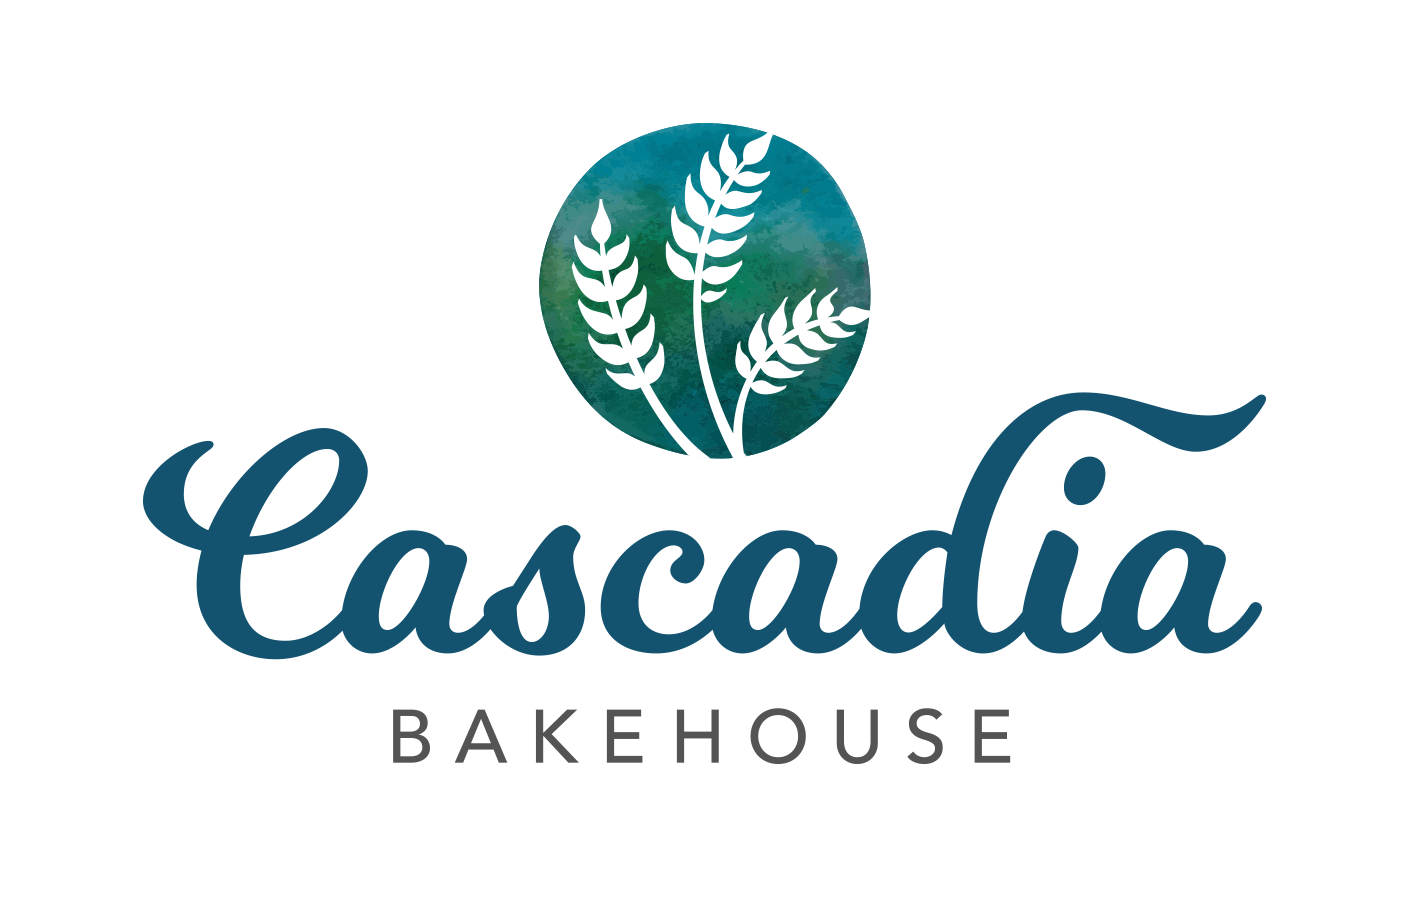 Logo and branding for Cascadia Bakehouse